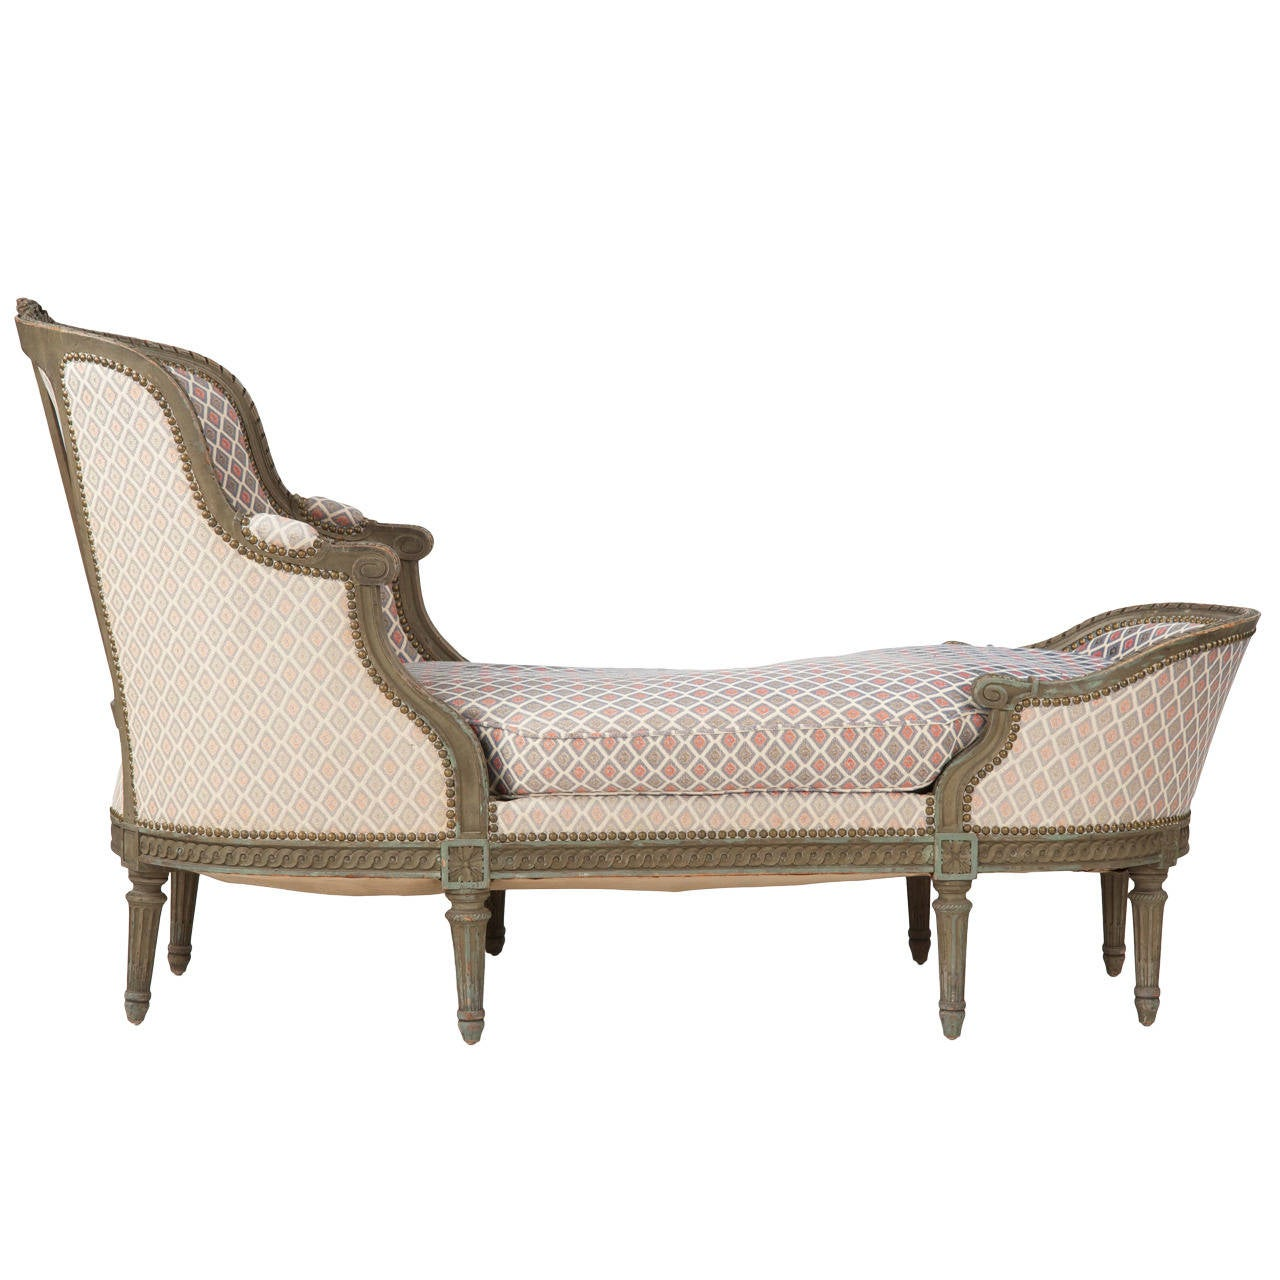 French louis xvi style painted antique chaise lounge for Antique chaise lounge furniture